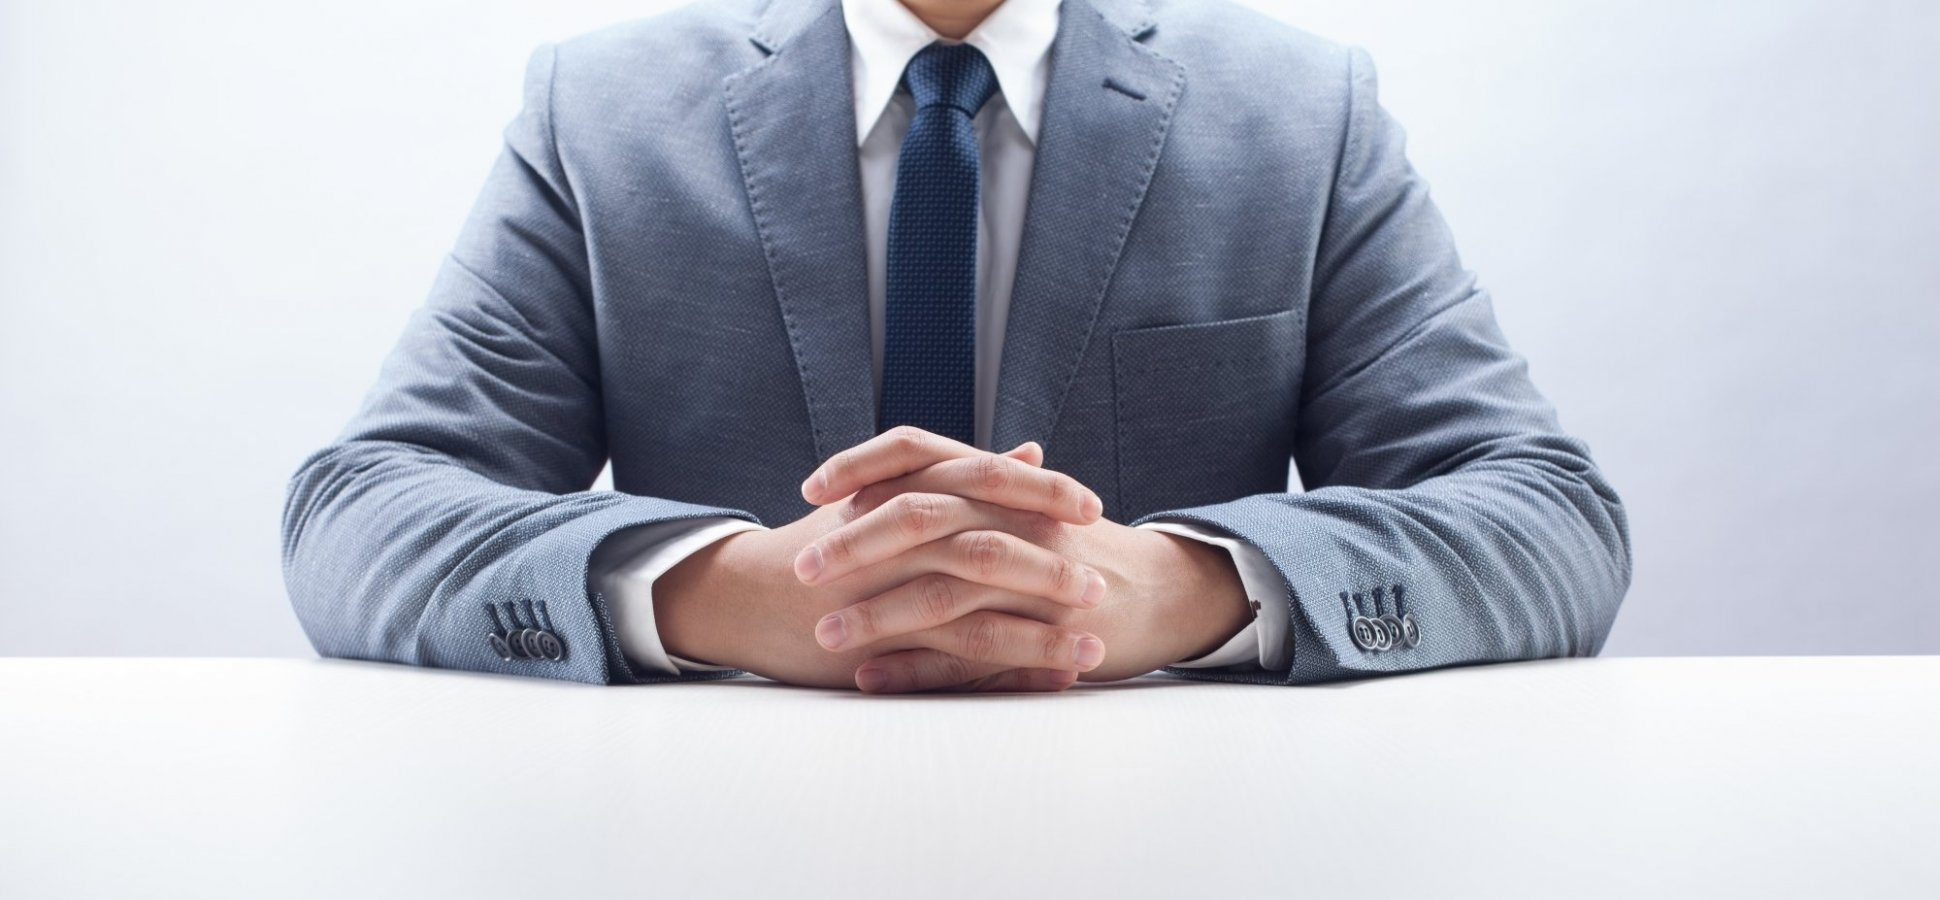 15 Favorite Interview Questions to Completely Disarm Job Candidates (in a Really Good Way)